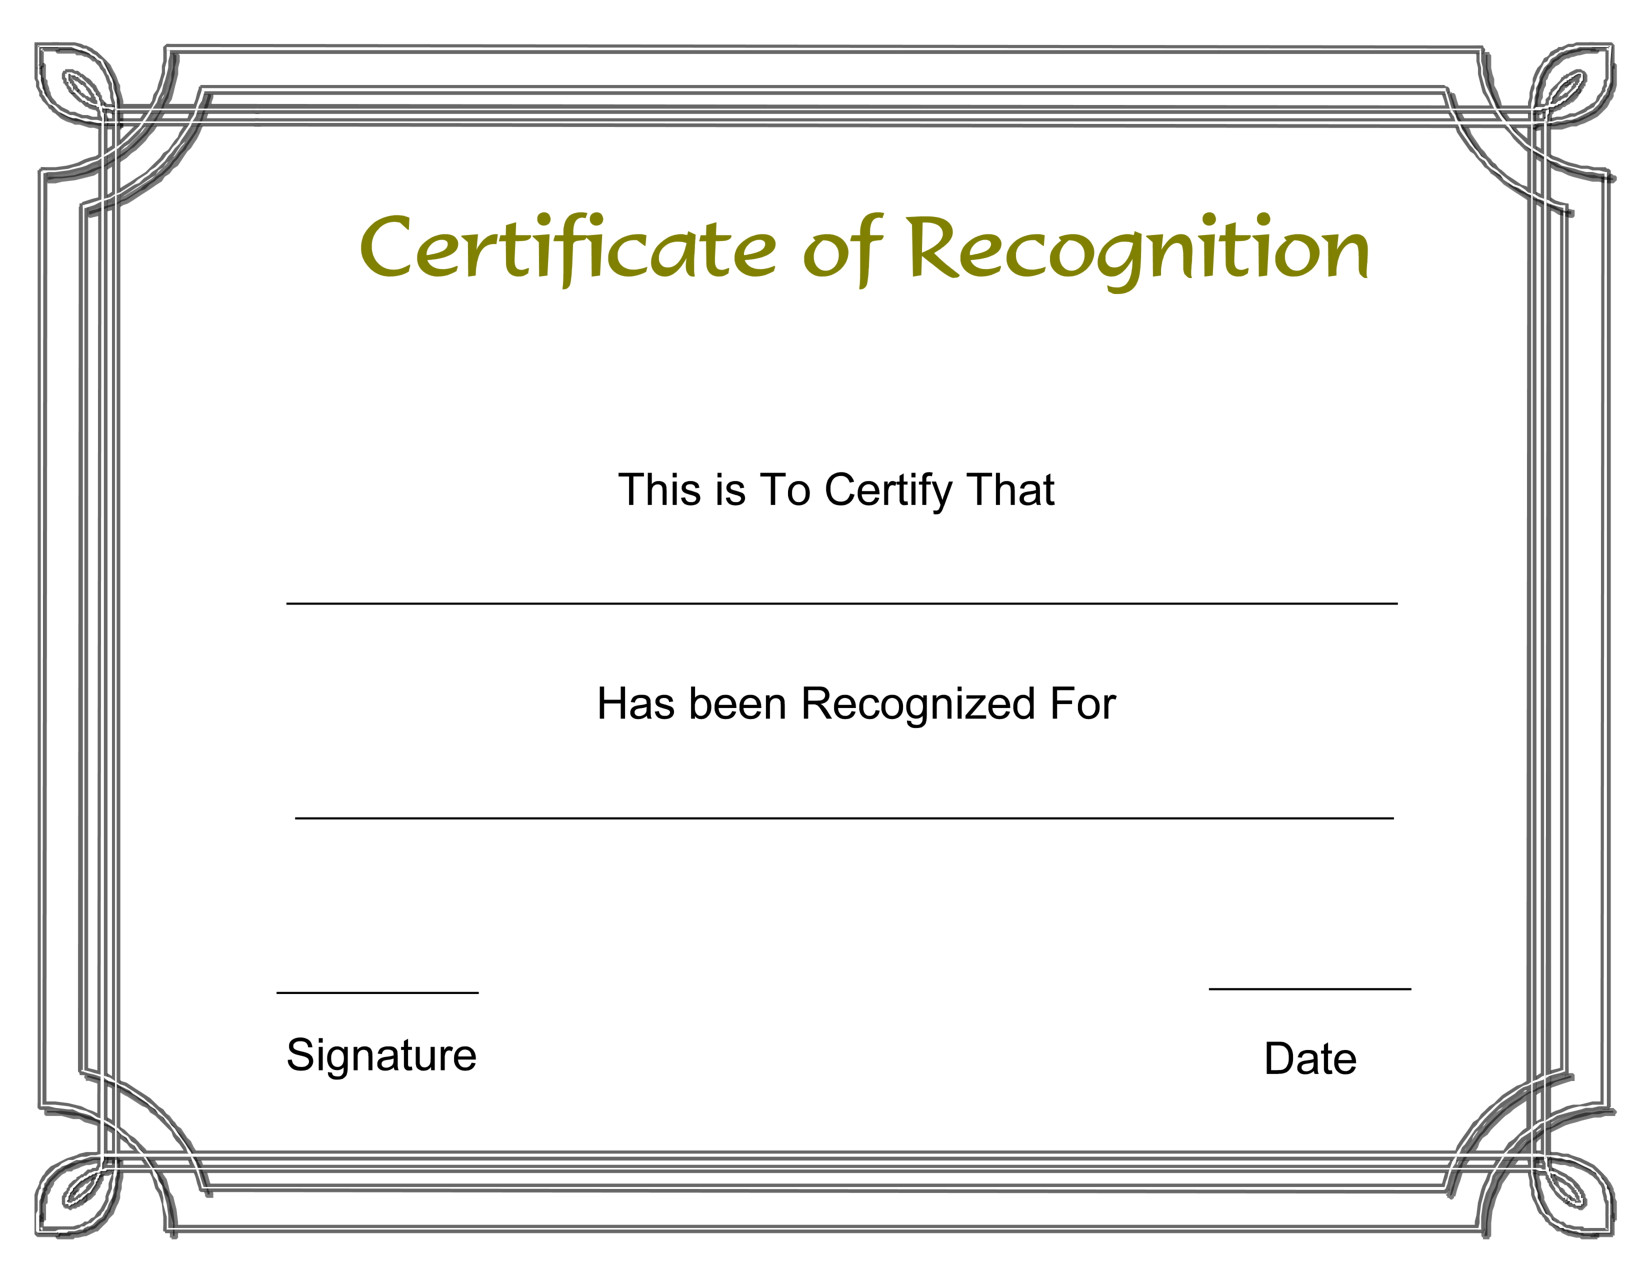 Certificate Of Recognition Template Template Free Award Certificate Templates and Employee